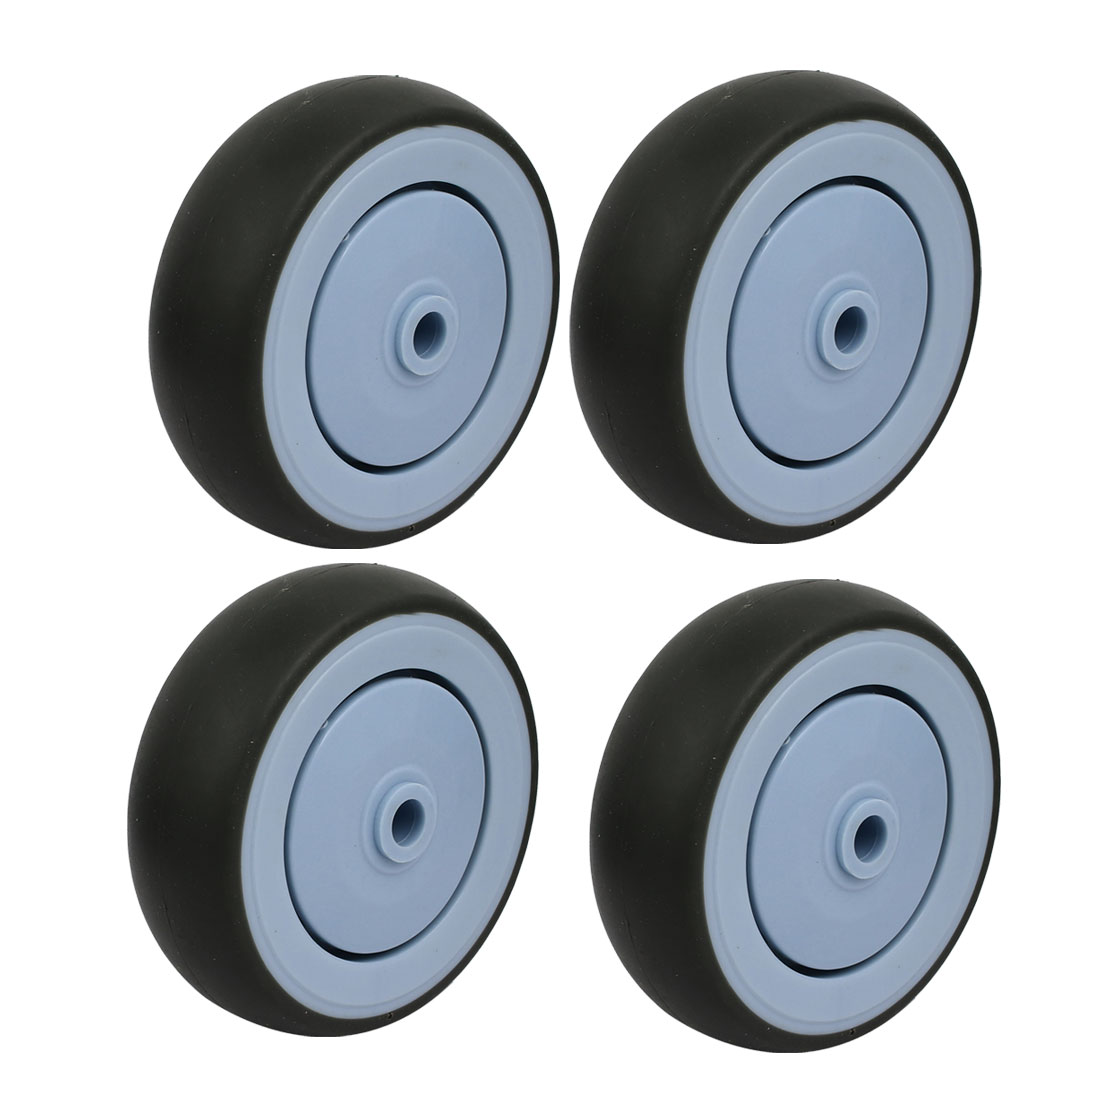 Unique Bargains 5-inch Diameter TPR Wheel Trolley Caster Pulley Roller Gray 4pcs